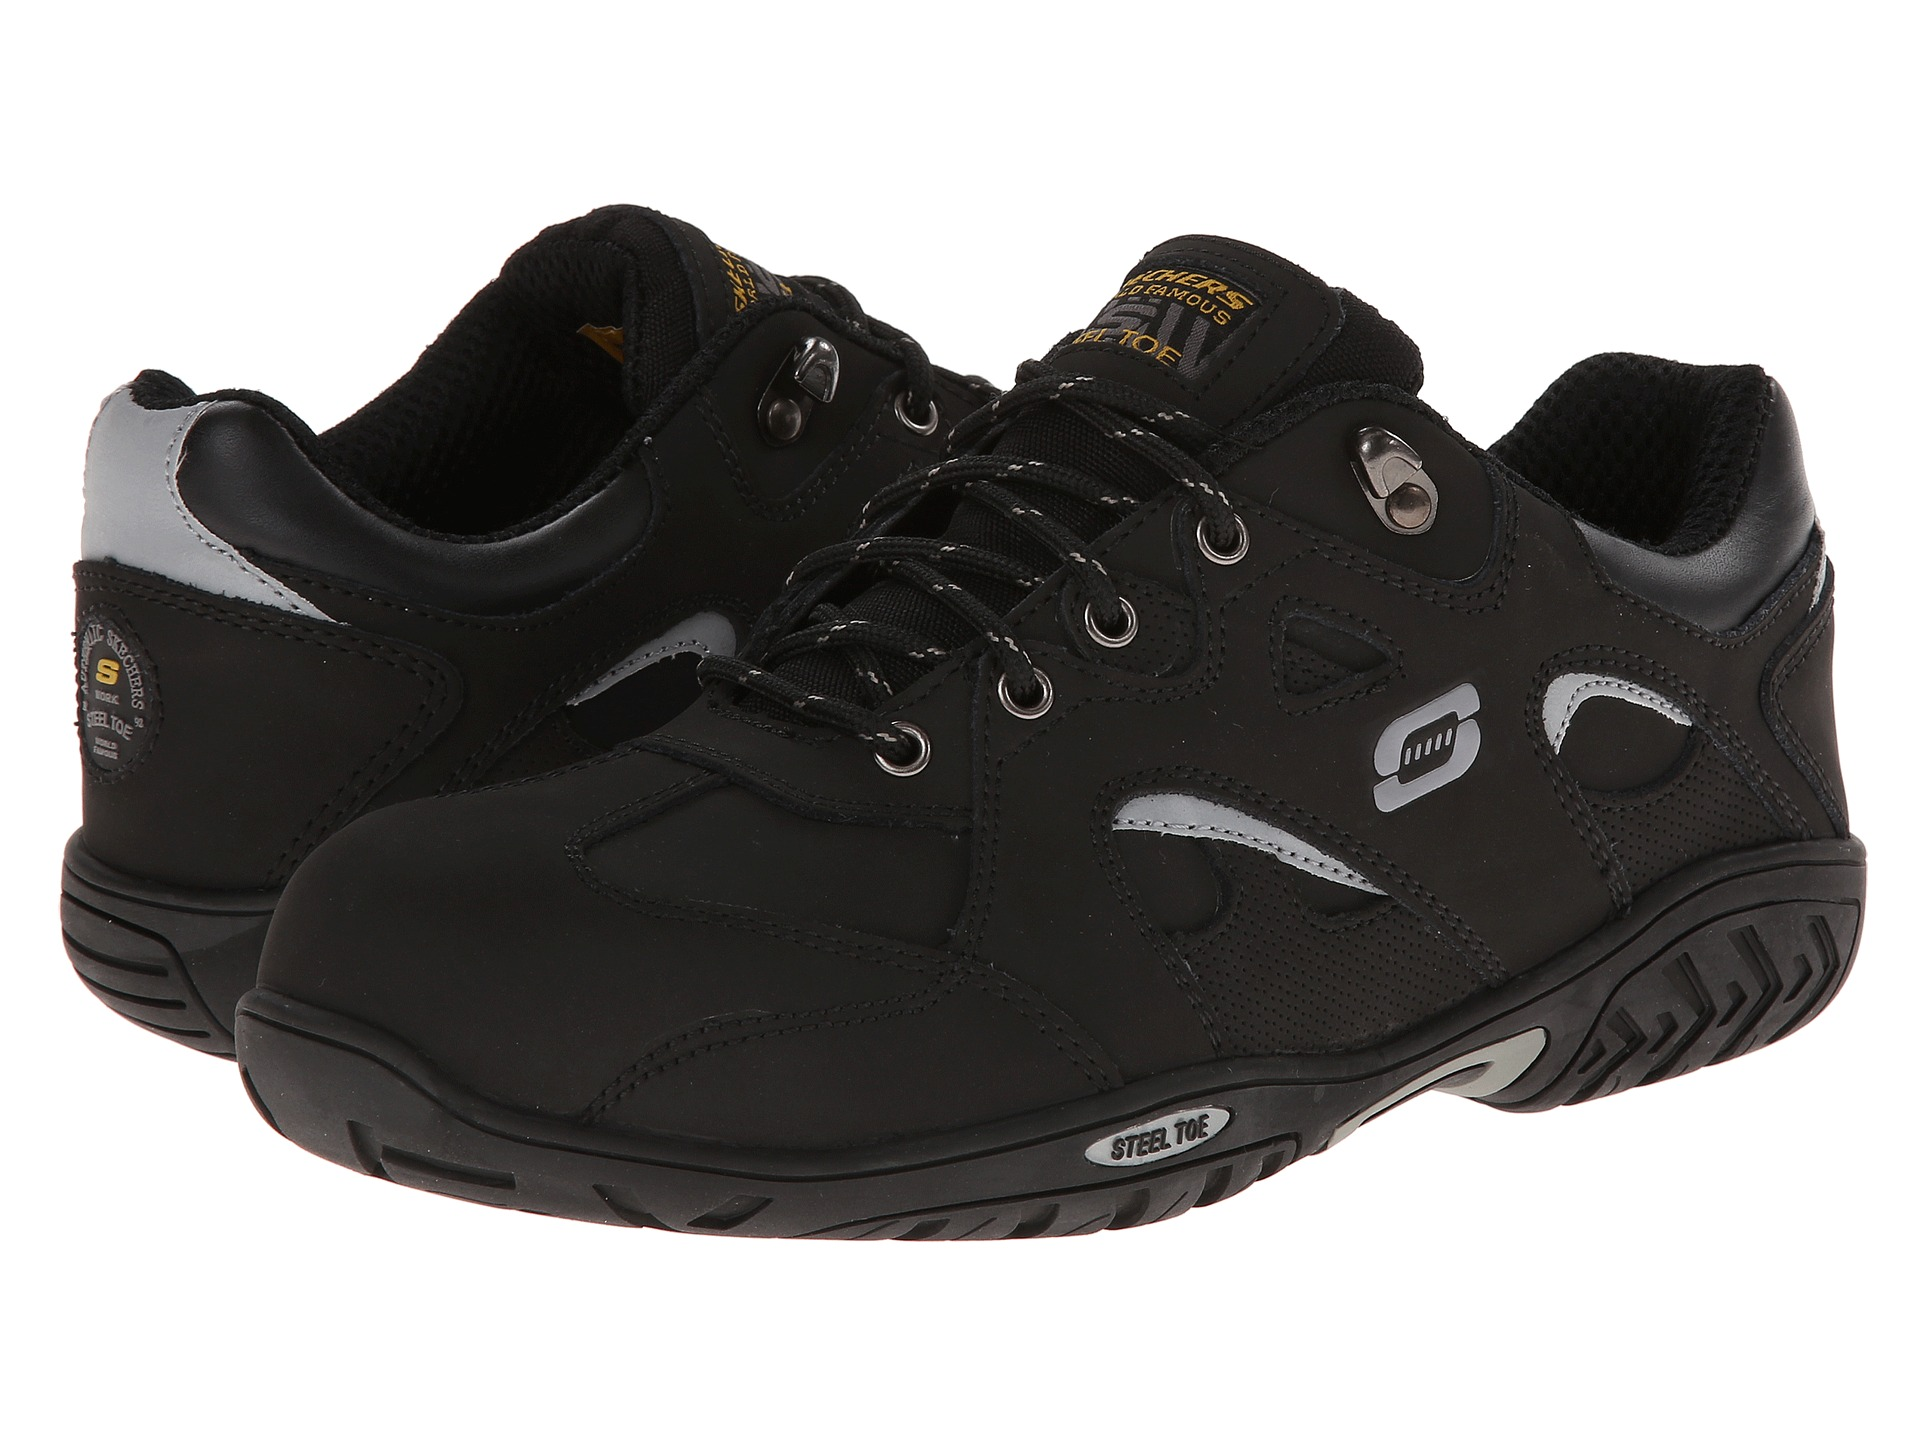 SKECHERS Work Joster Steel Toe Fusion Oxford Black - Zappos.com Free Shipping BOTH Ways